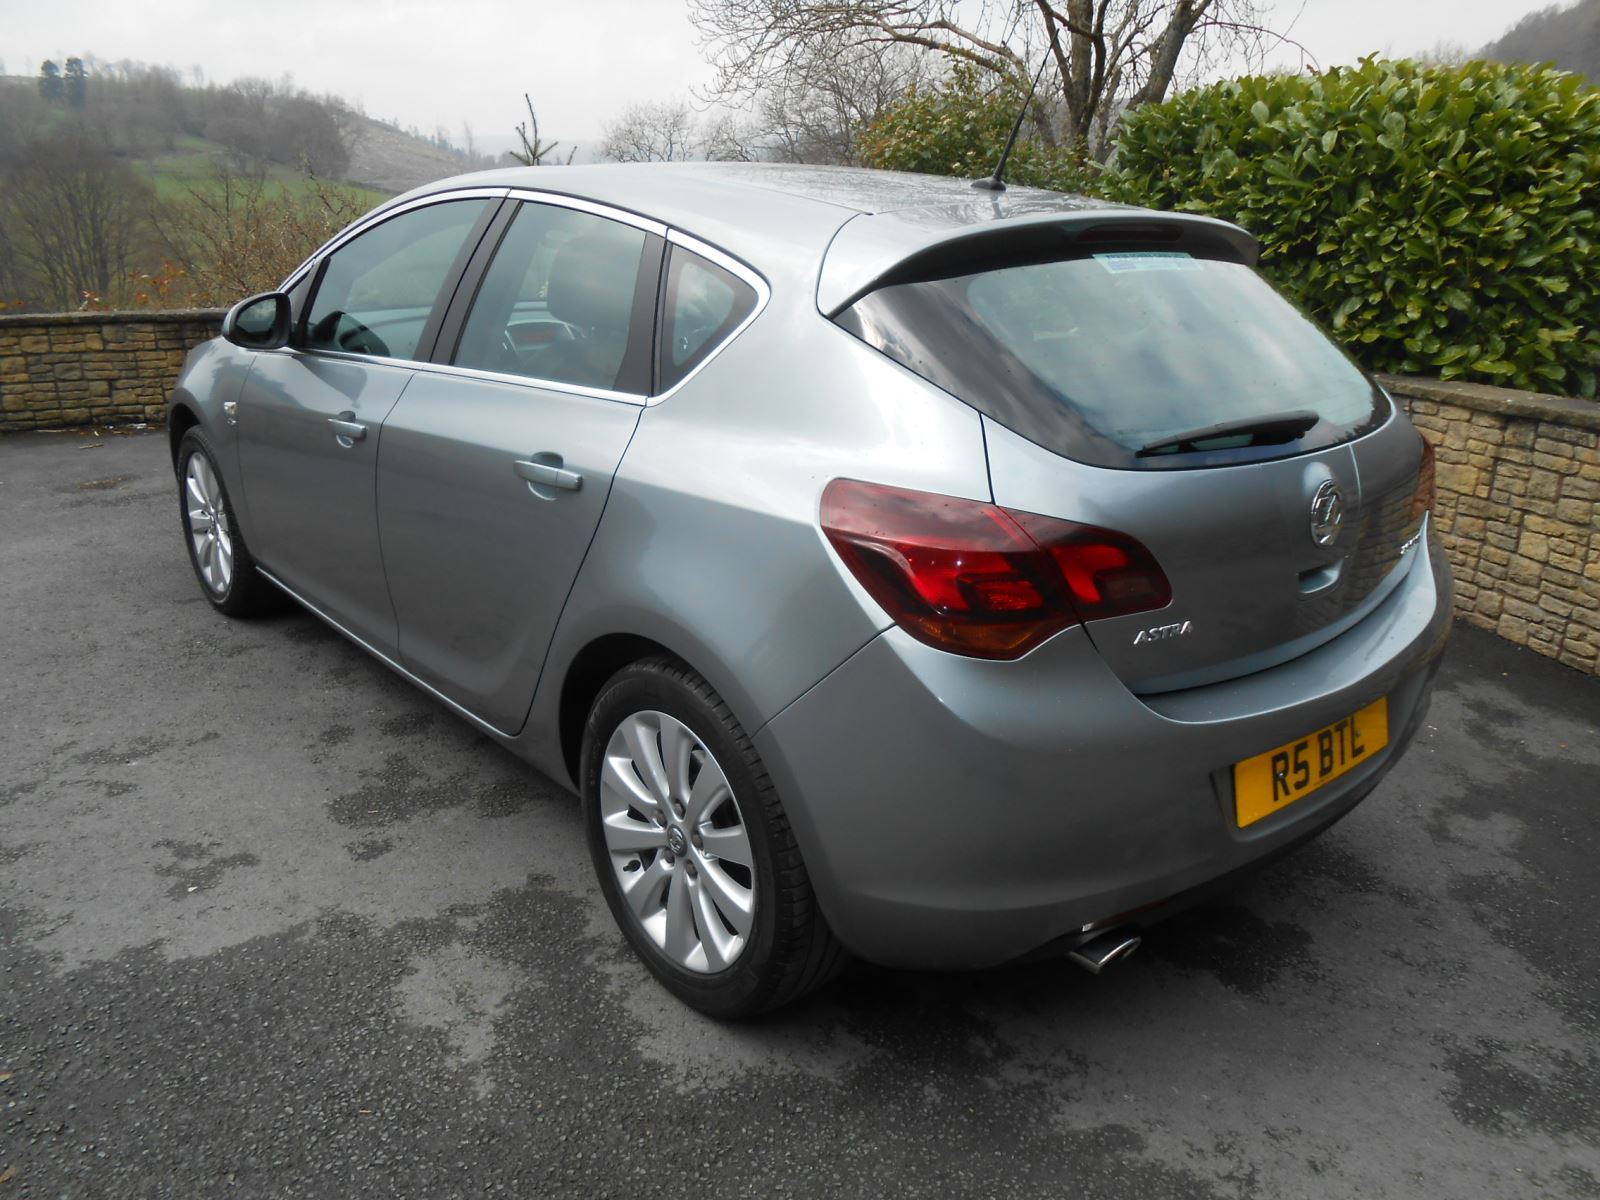 Vauxhall Astra 2 0 Cdti Elite 5 Door Automatic Car For